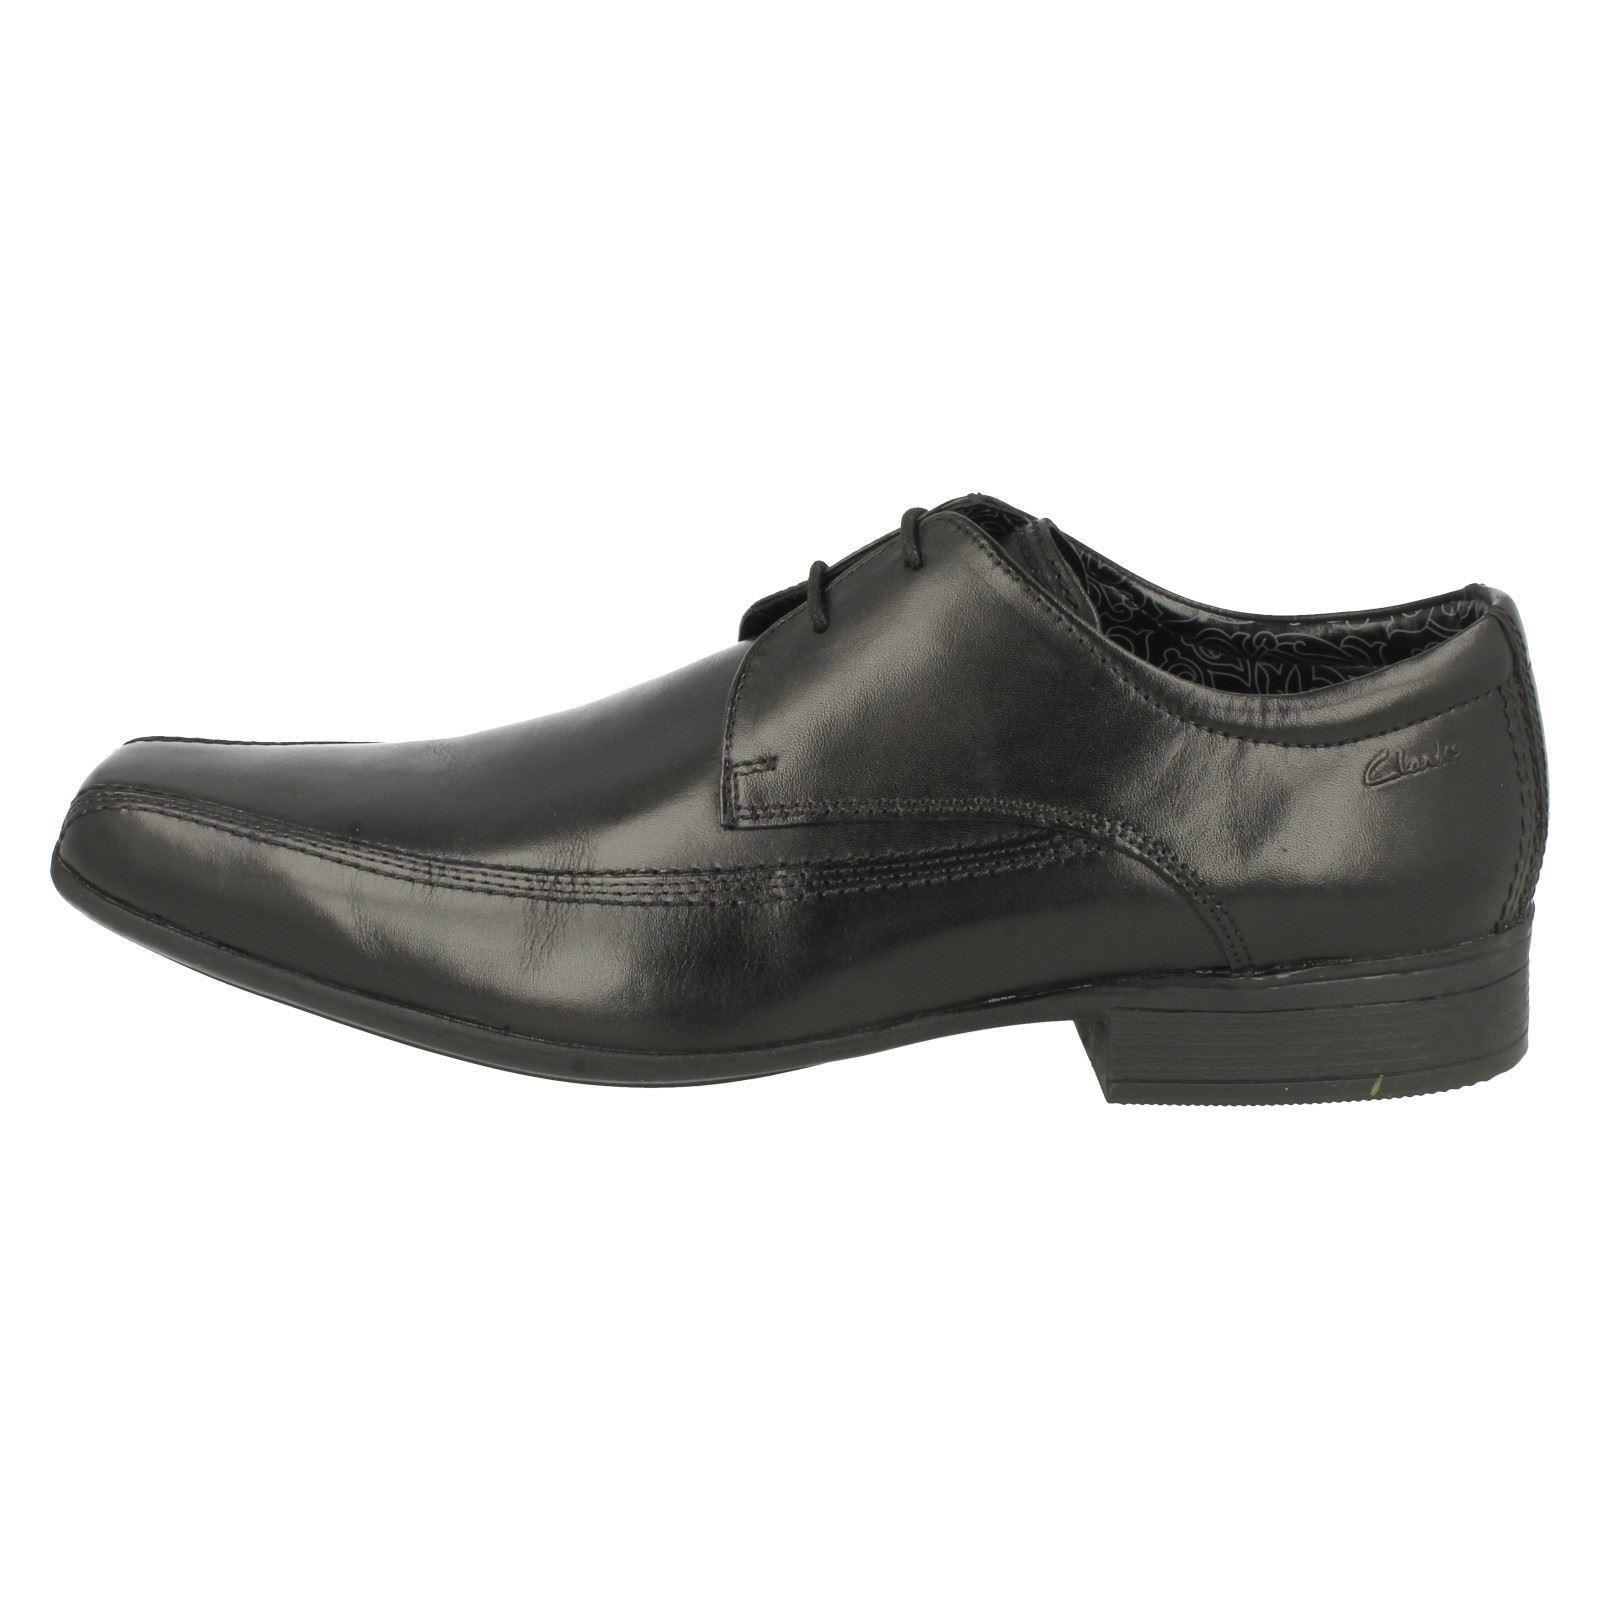 Mens Clarks Formal Shoes /'Aze Day/'